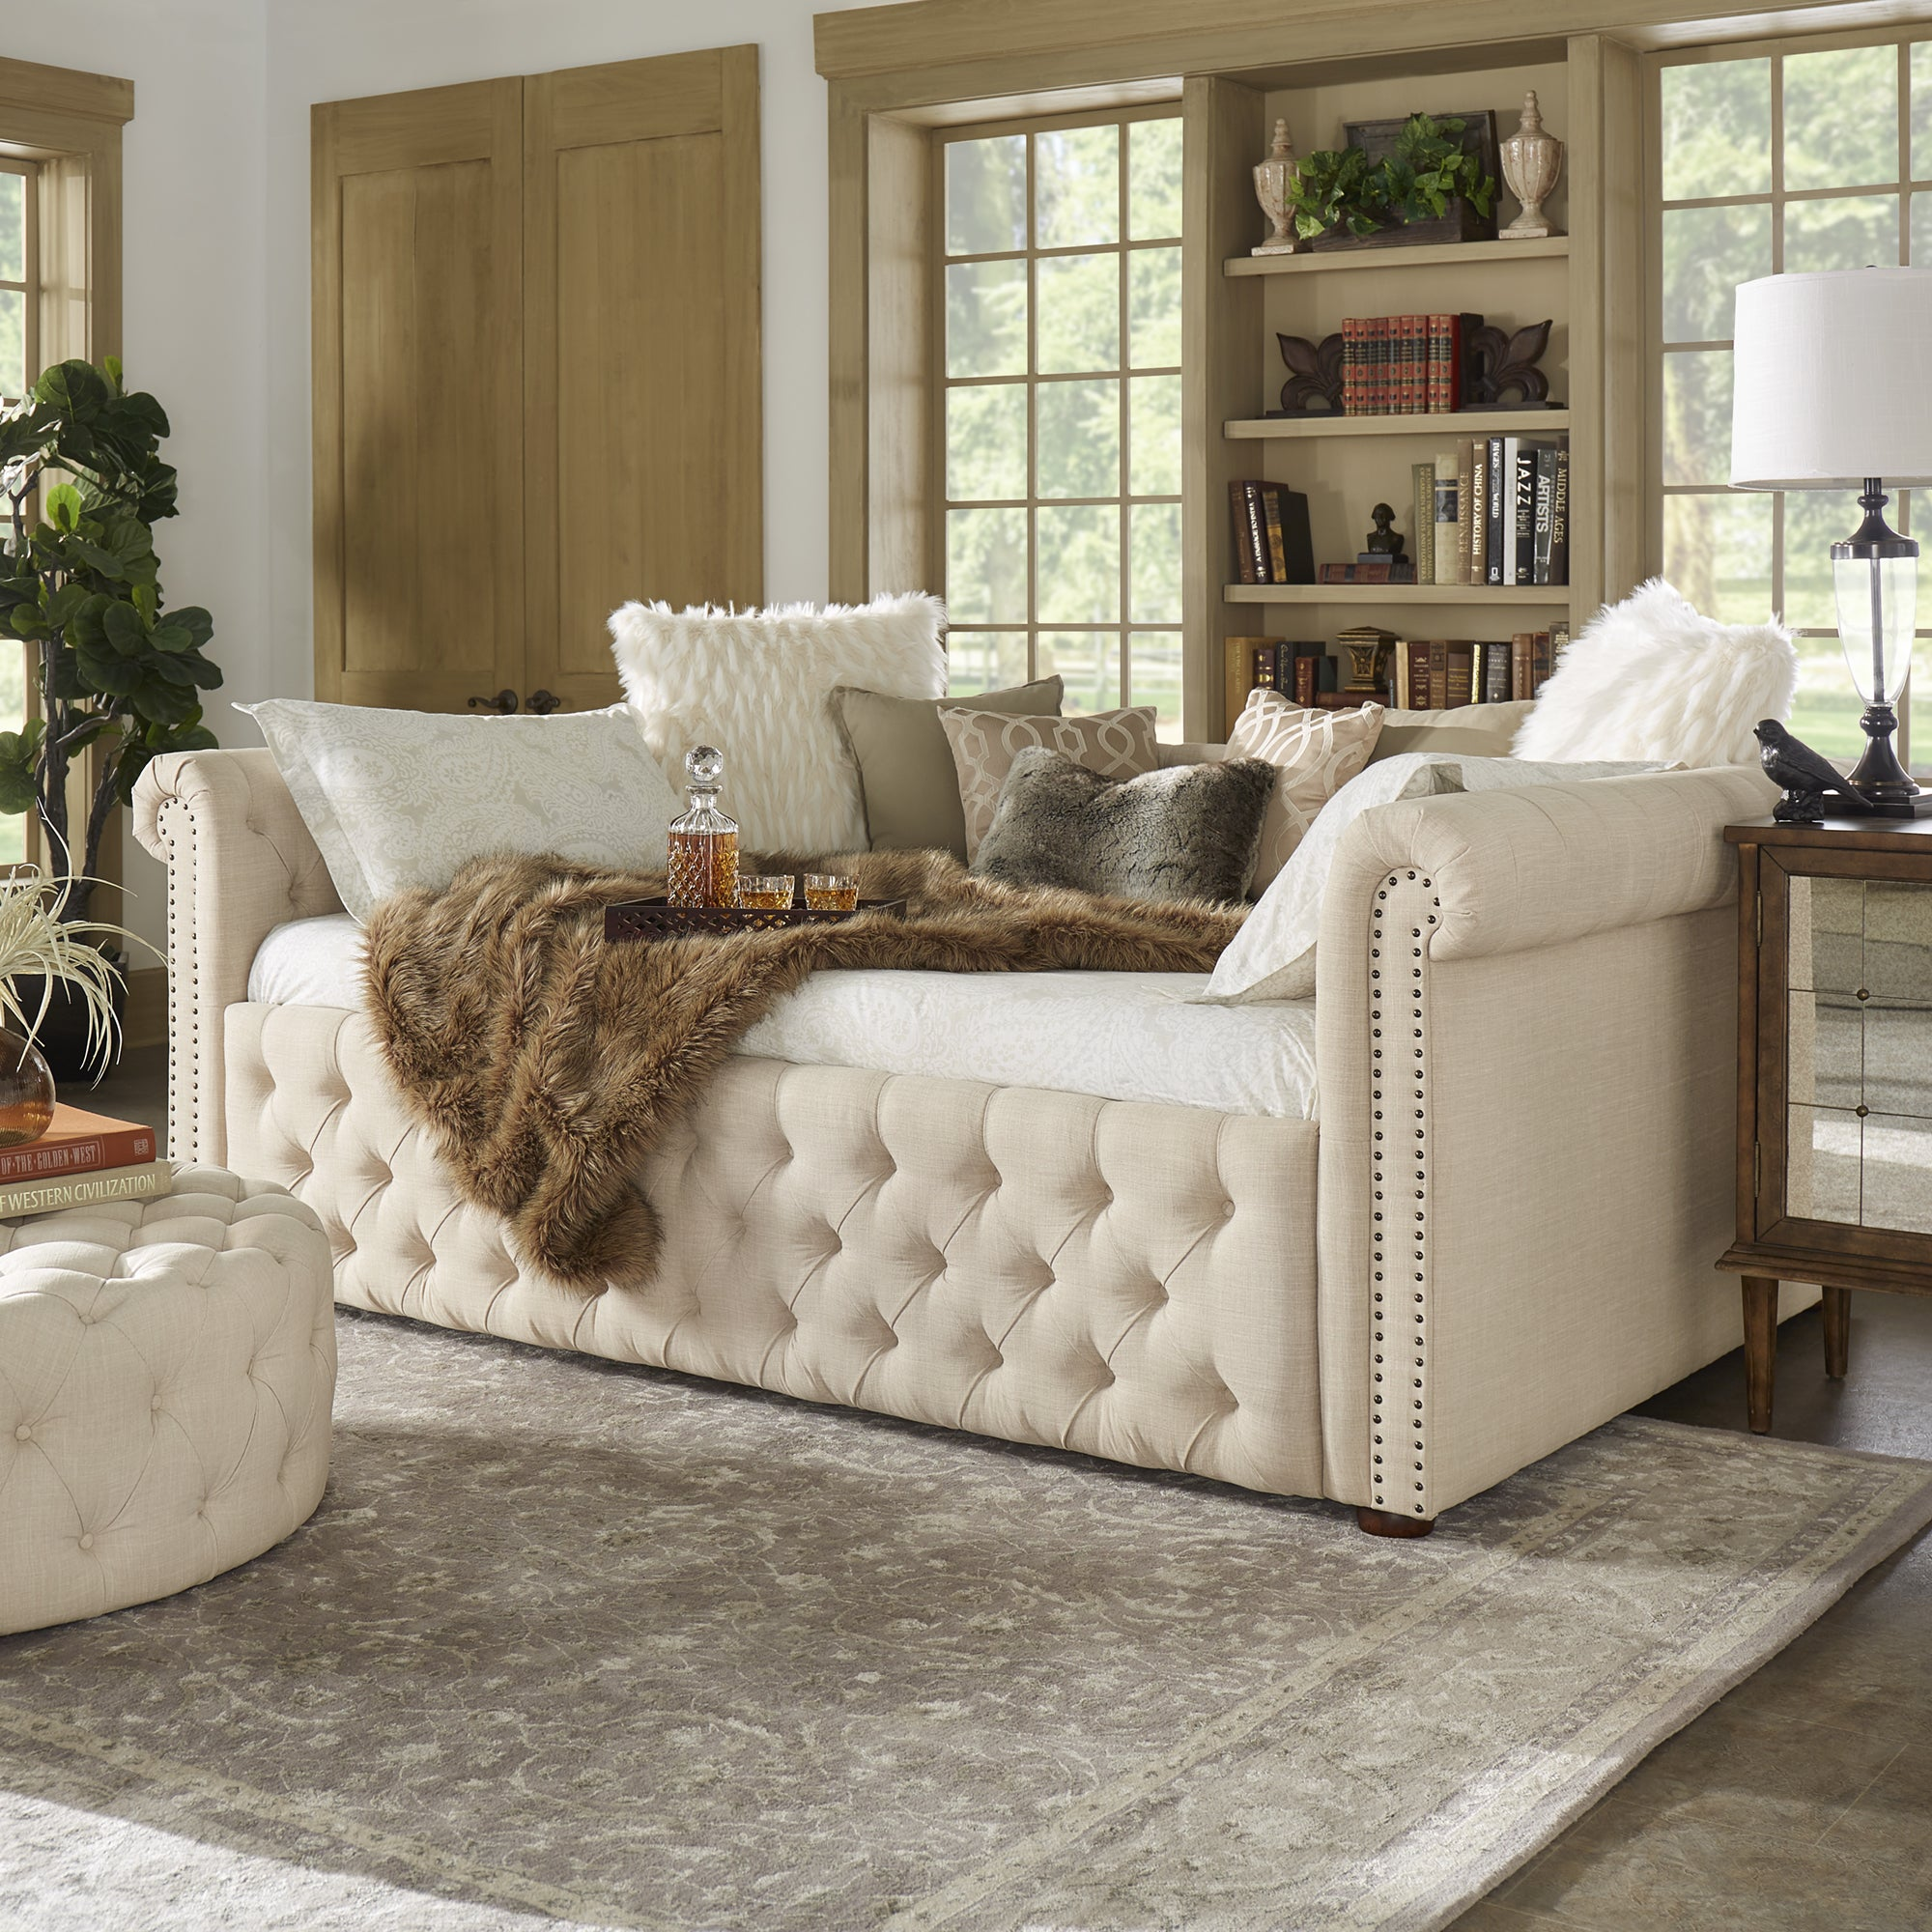 Shop Knightsbridge Full Size Tufted Scroll Arm Chesterfield Daybed